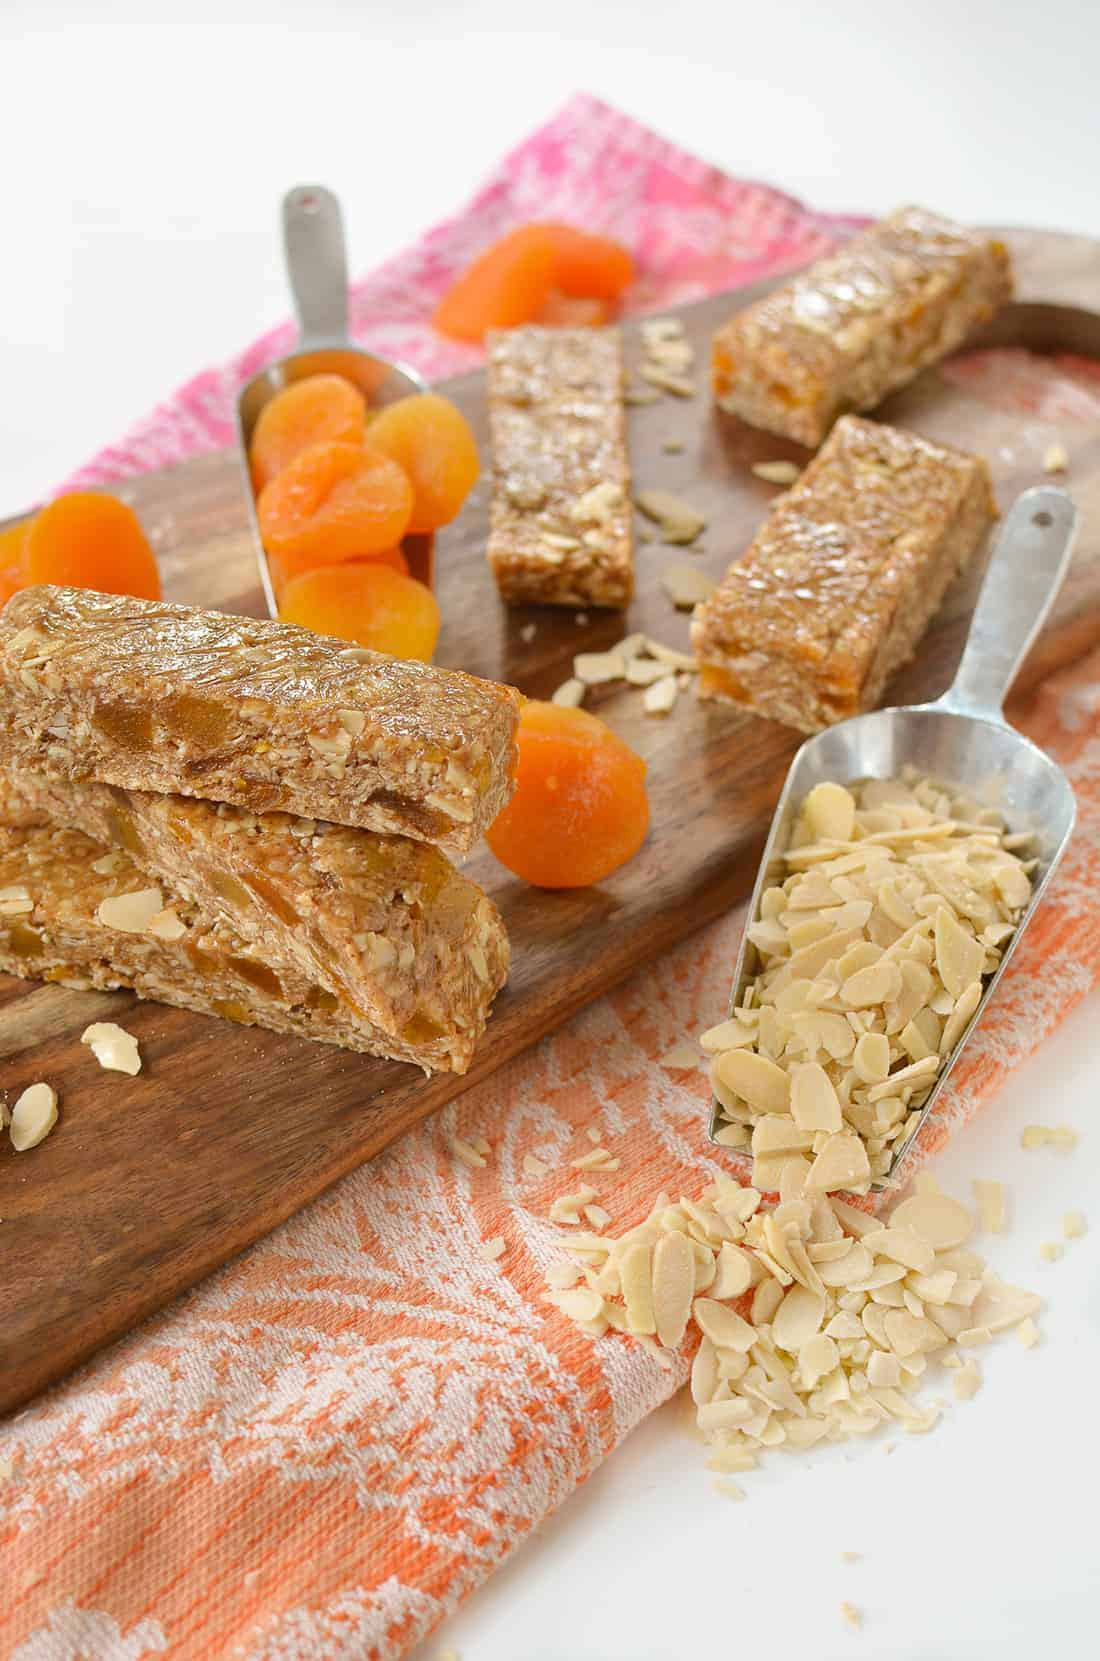 No Bake Almond Apricot Granola Bars! These healthy energy bars take less than 10 minutes to make and are packed with protein, fiber and nutrition! Gluten-Free with #vegan option | www.delishknowledge.com